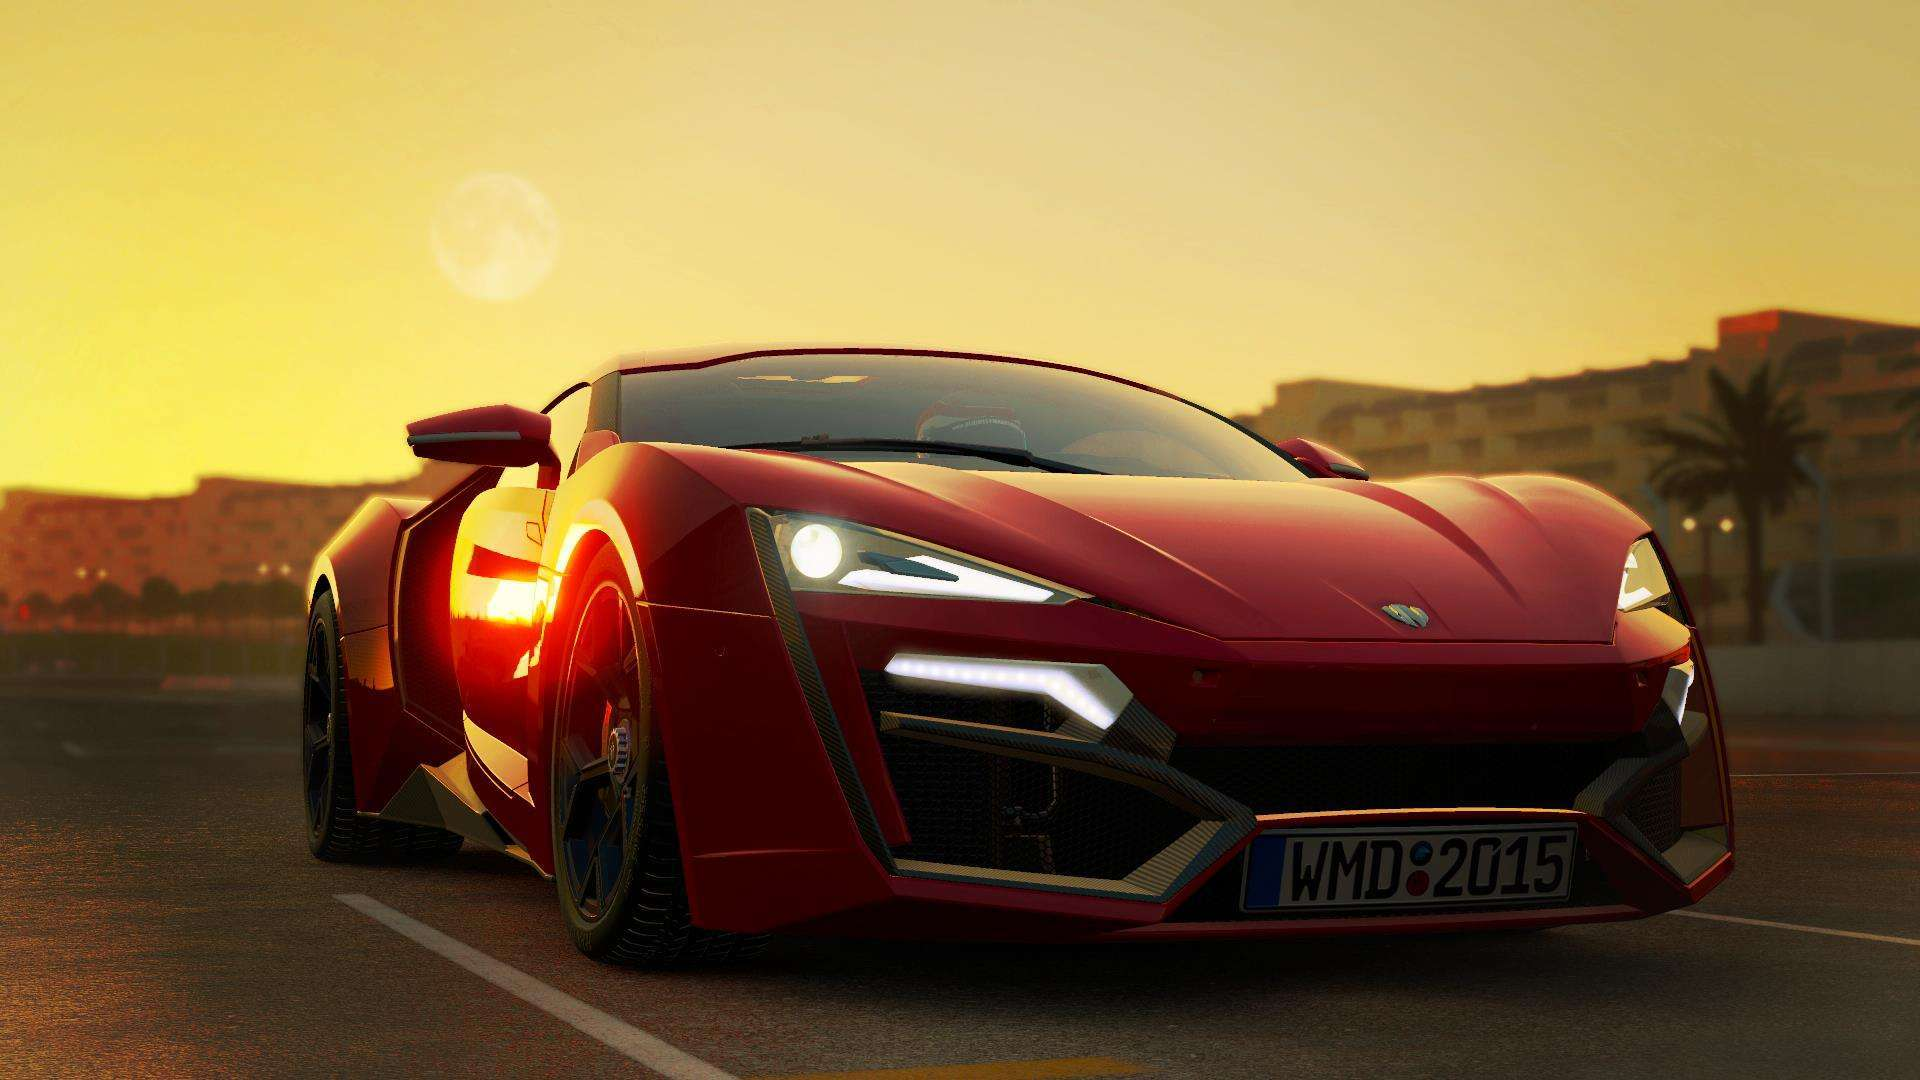 Lykan hypersport wallpapers wallpaper cave - Lykan hypersport wallpaper 1920x1080 ...